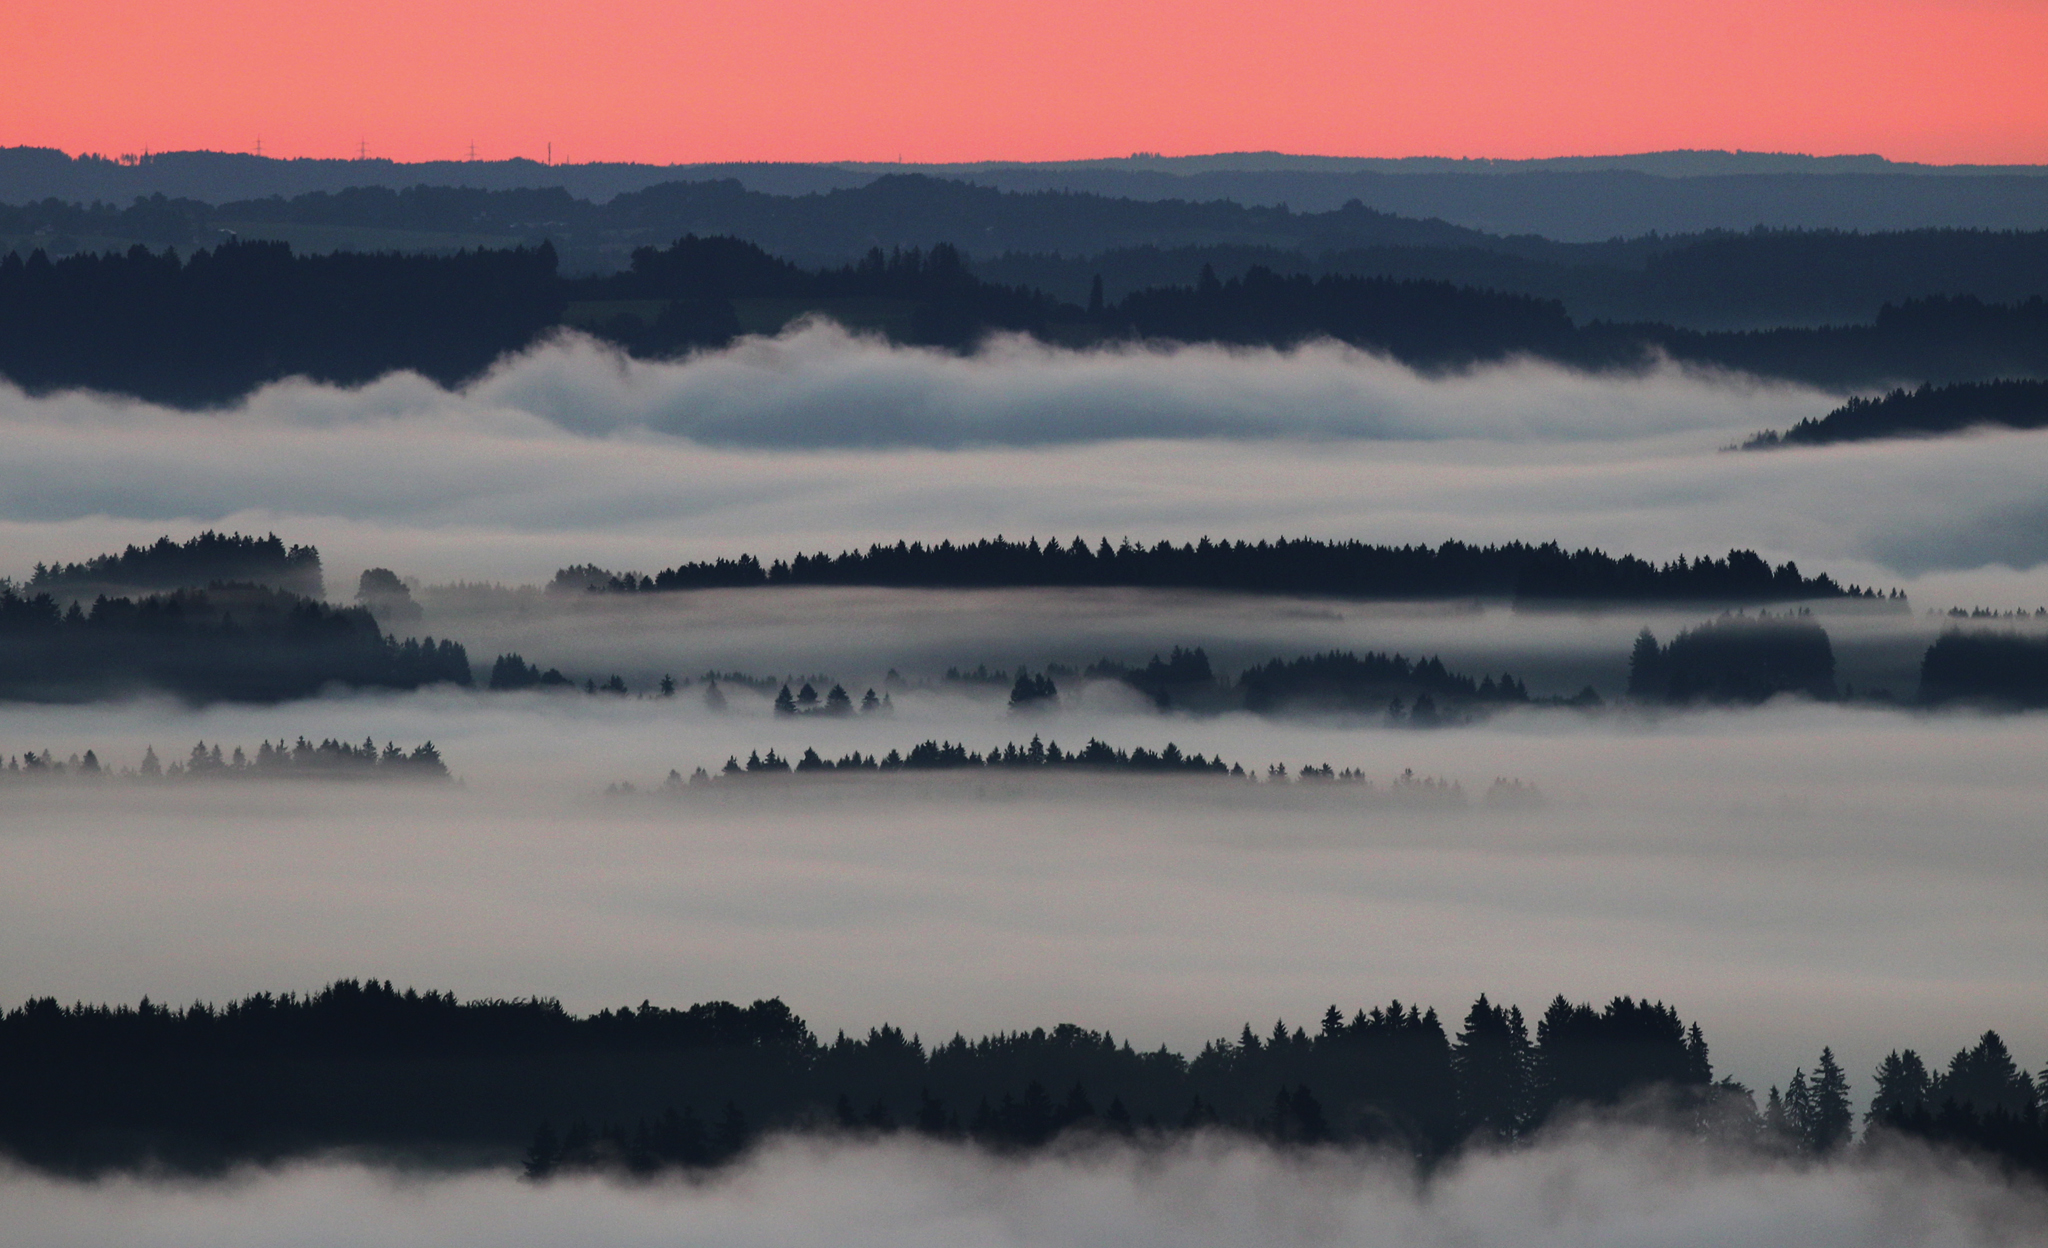 Morning fog covers the valleys near Bernbeuren, southern Germany, at sunrise.